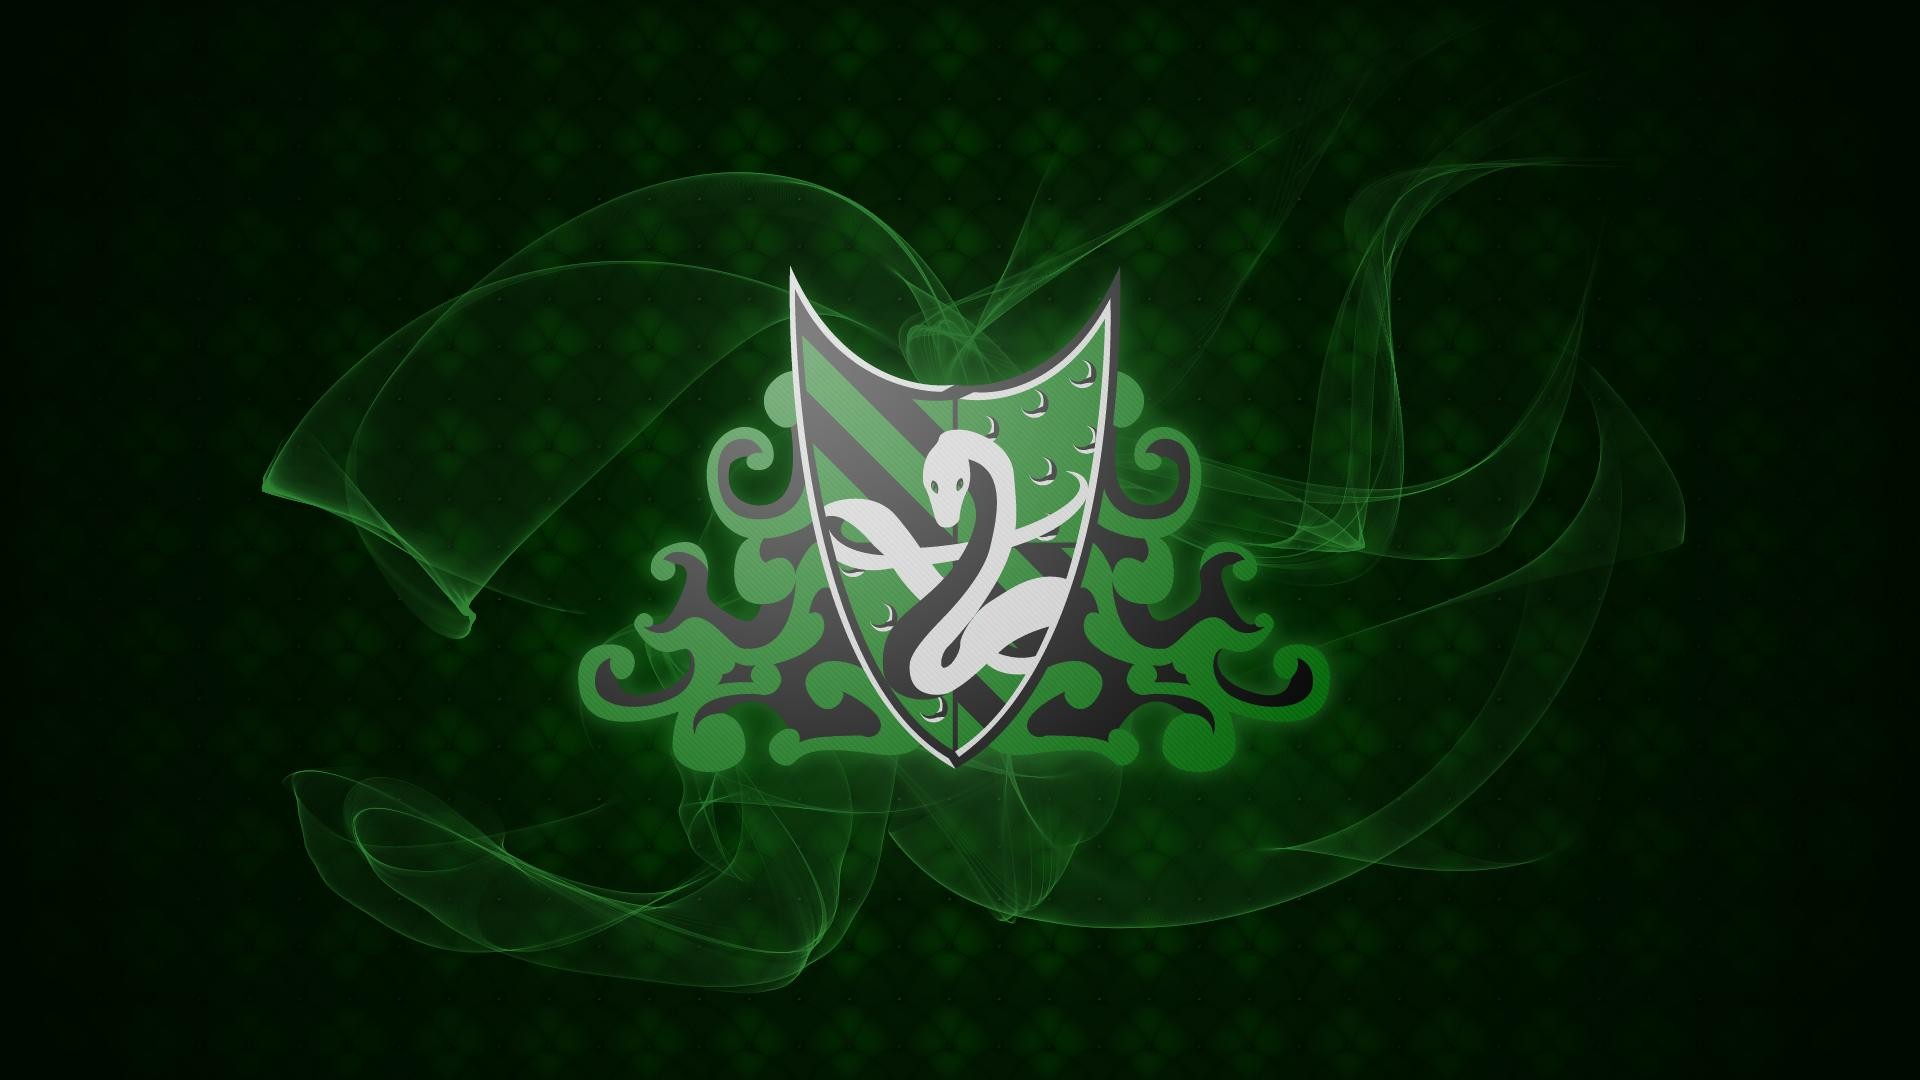 Res: 1920x1080, Slytherin Wallpaper Tumblr Slytherin House Wallpaper